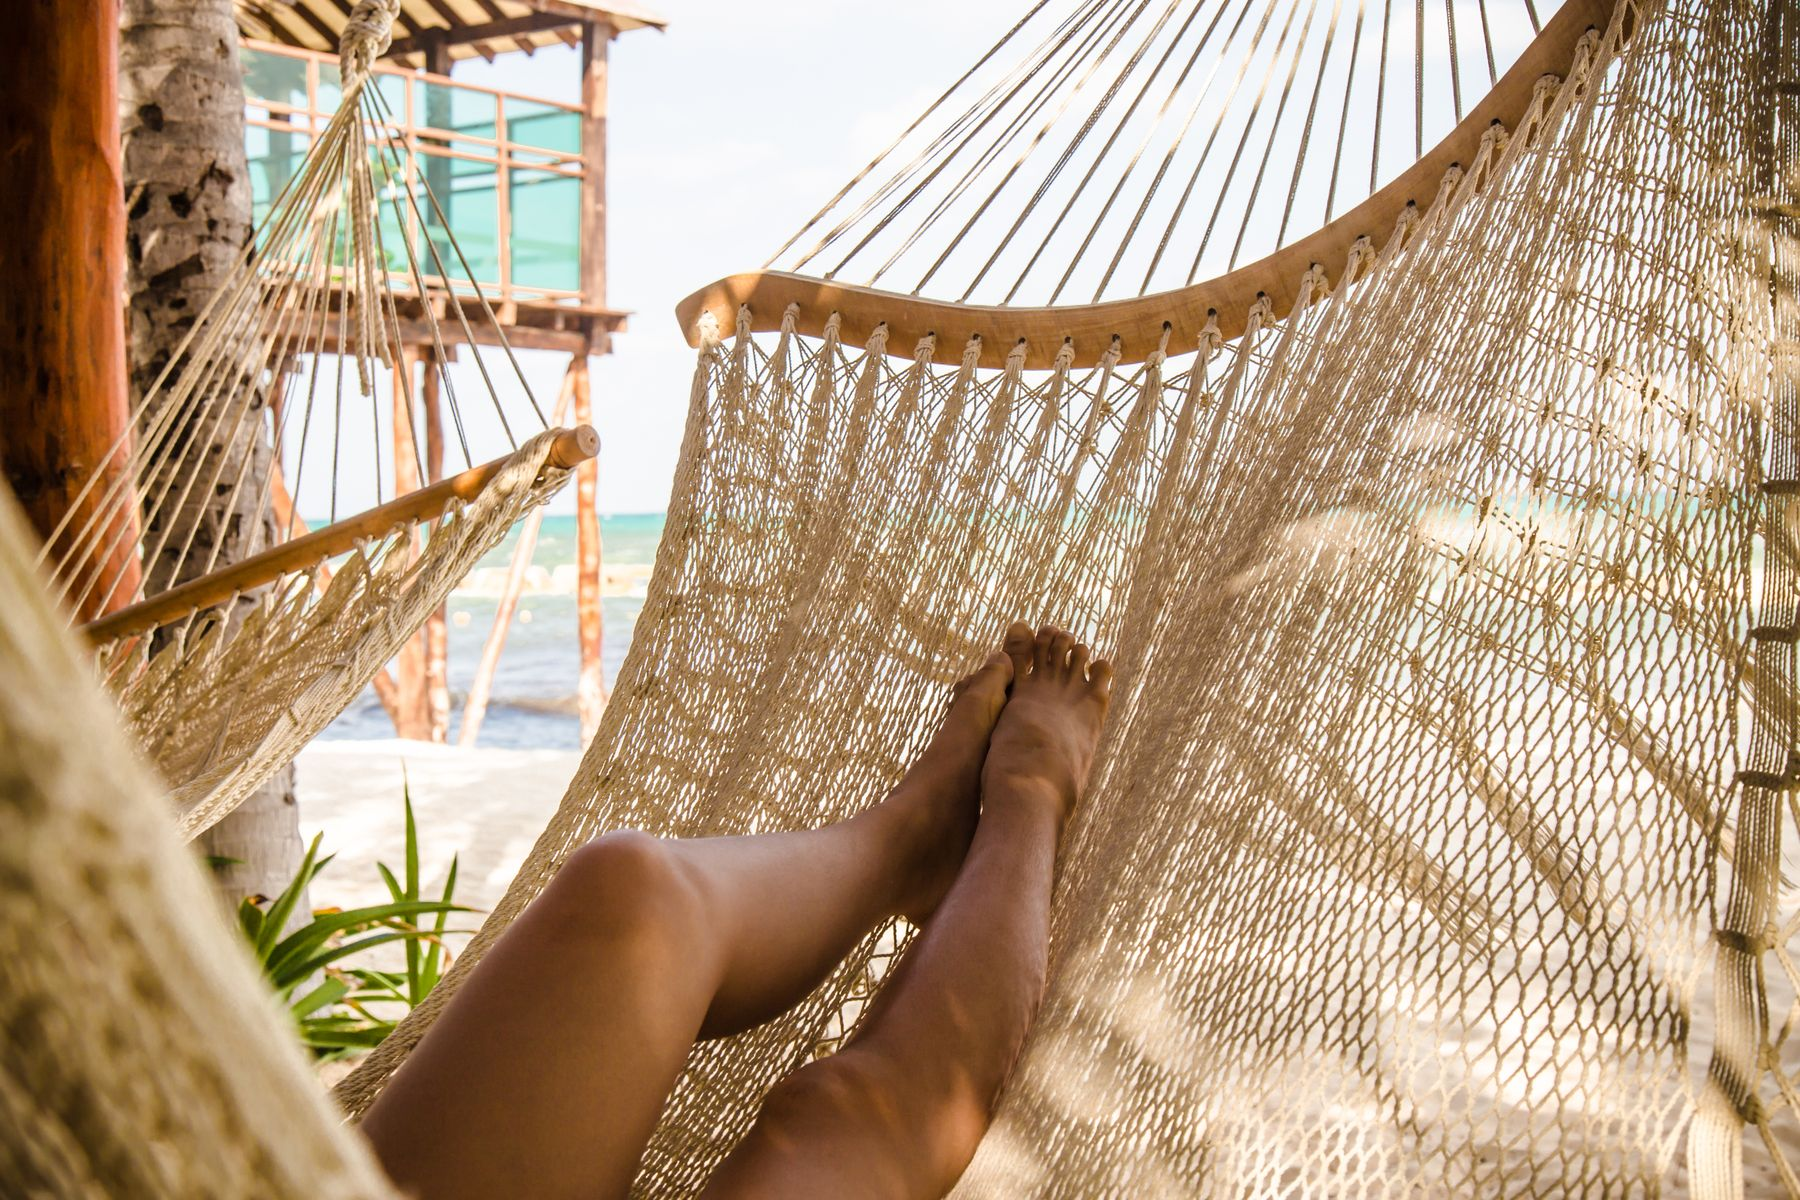 2021 travel trends: beach hotel with hammock